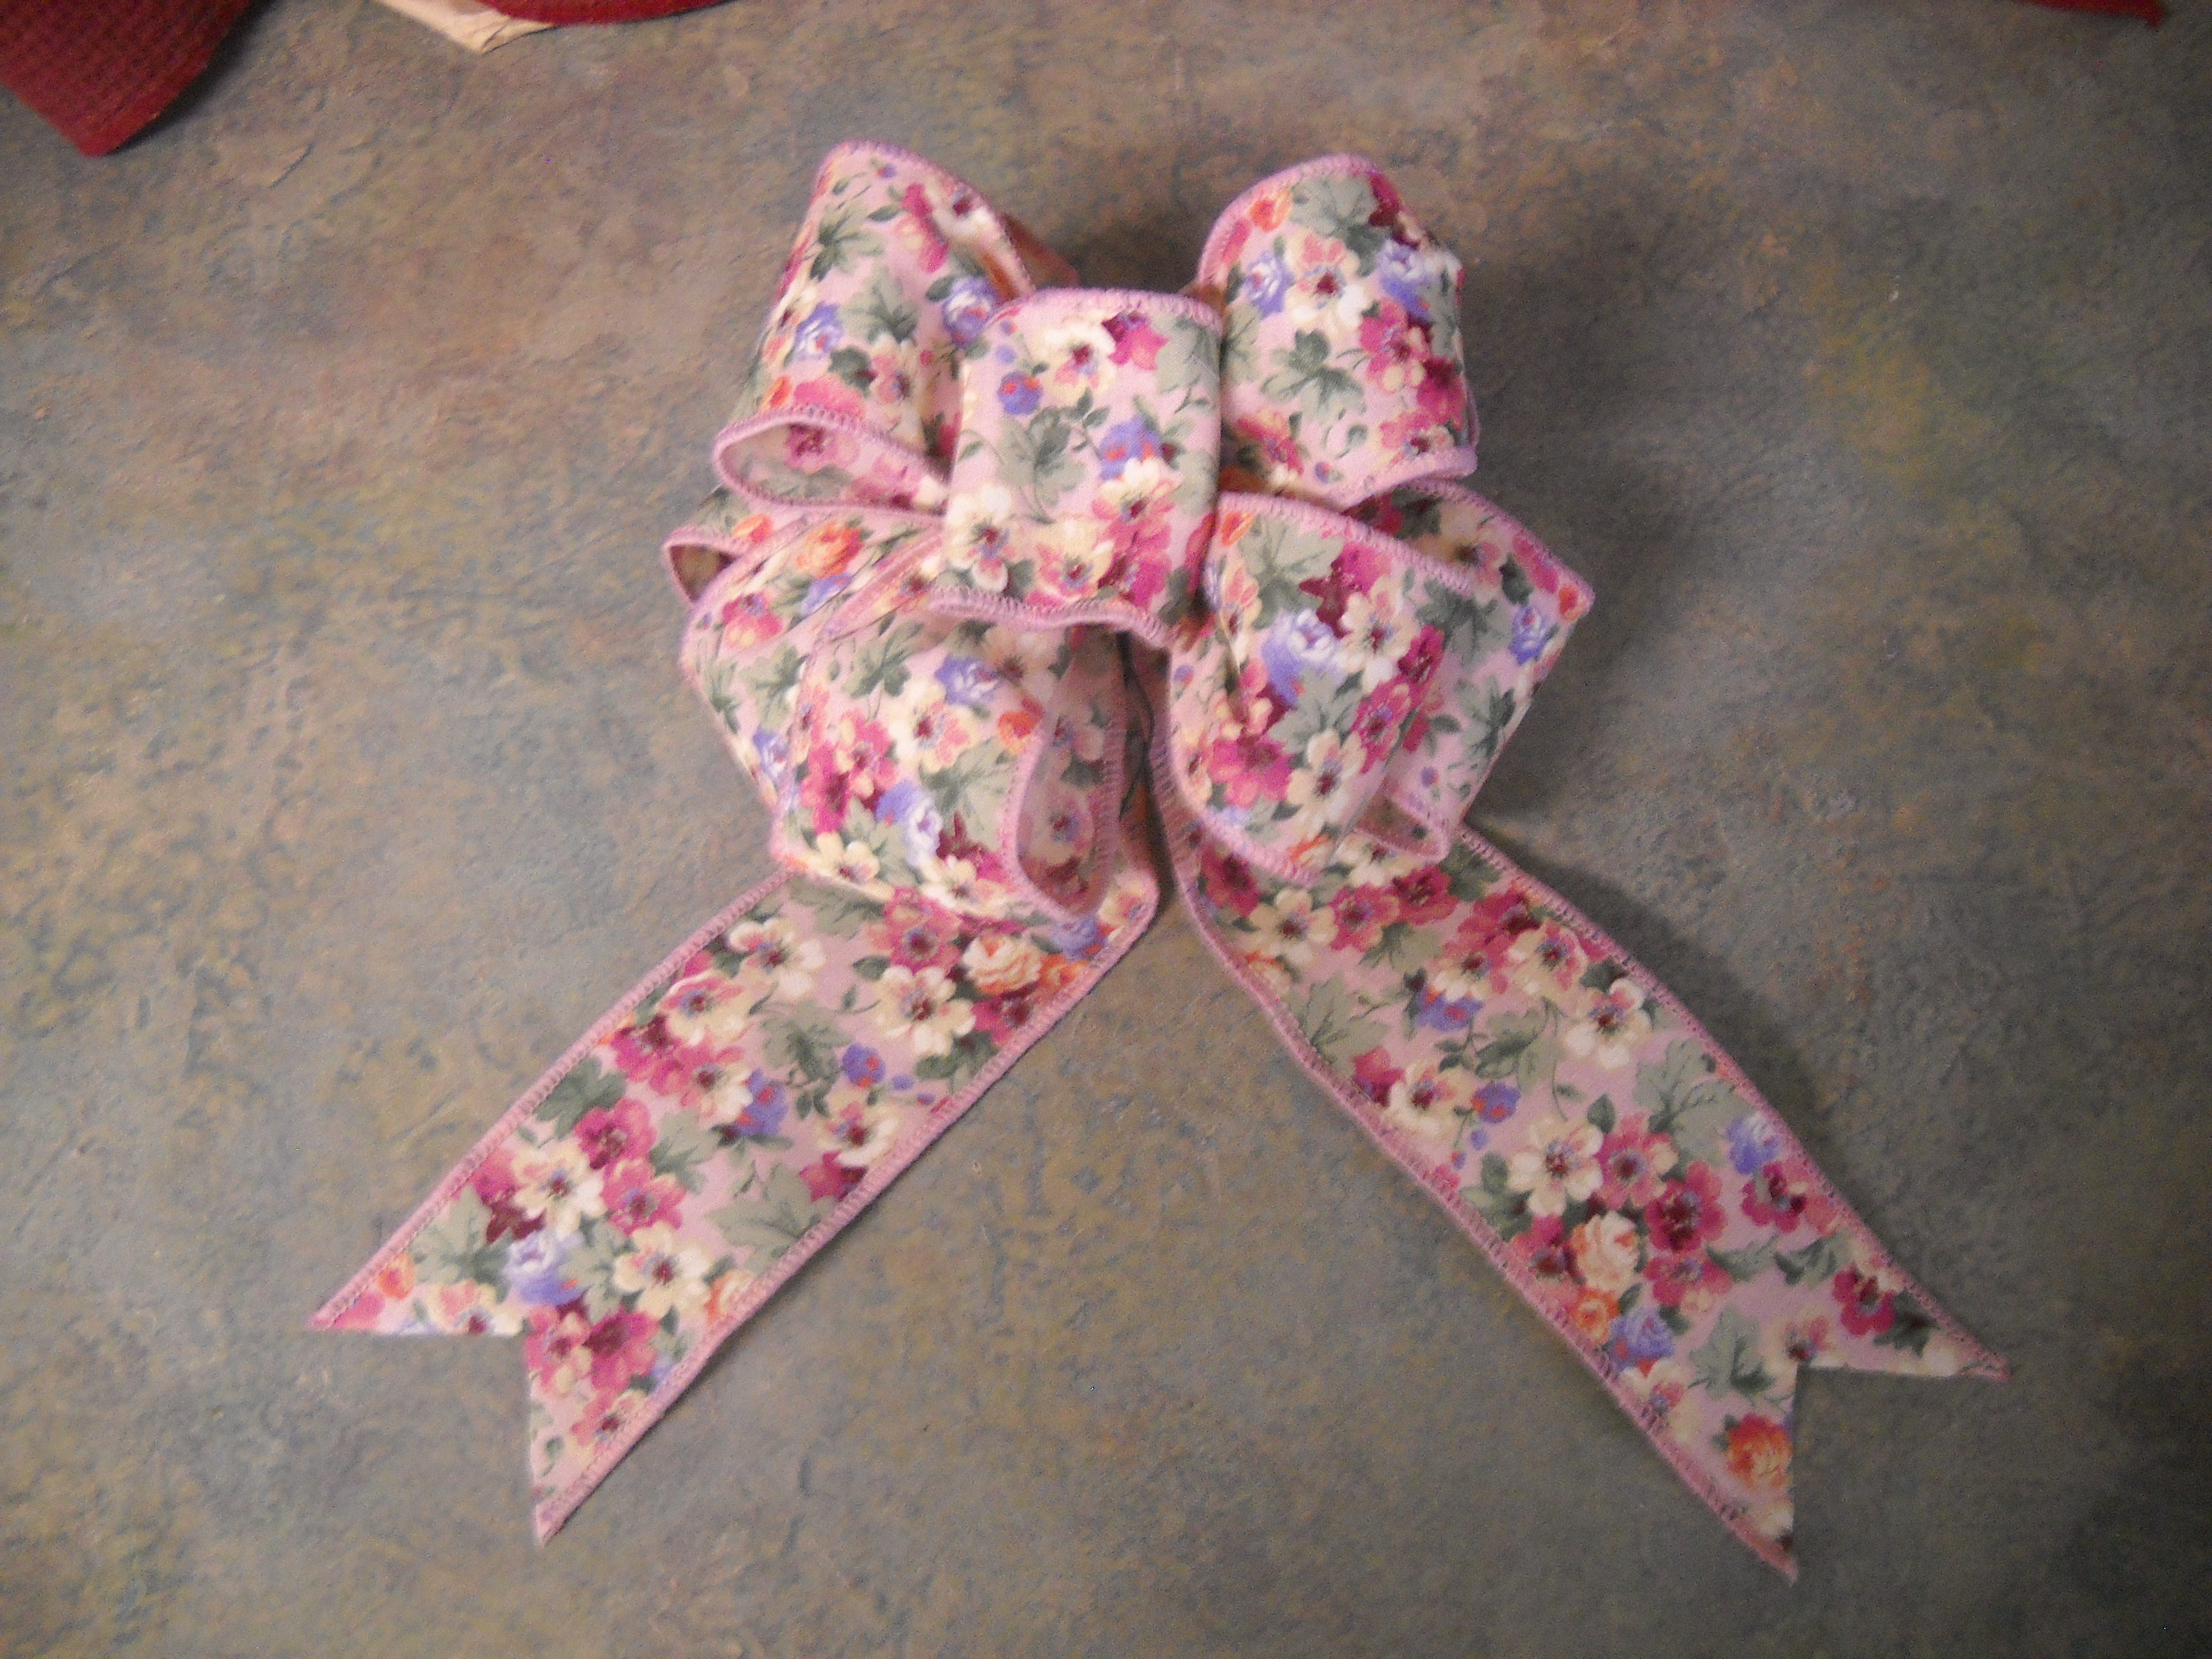 How To Tie A Florist Bow 12 Steps With Pictures Instructables